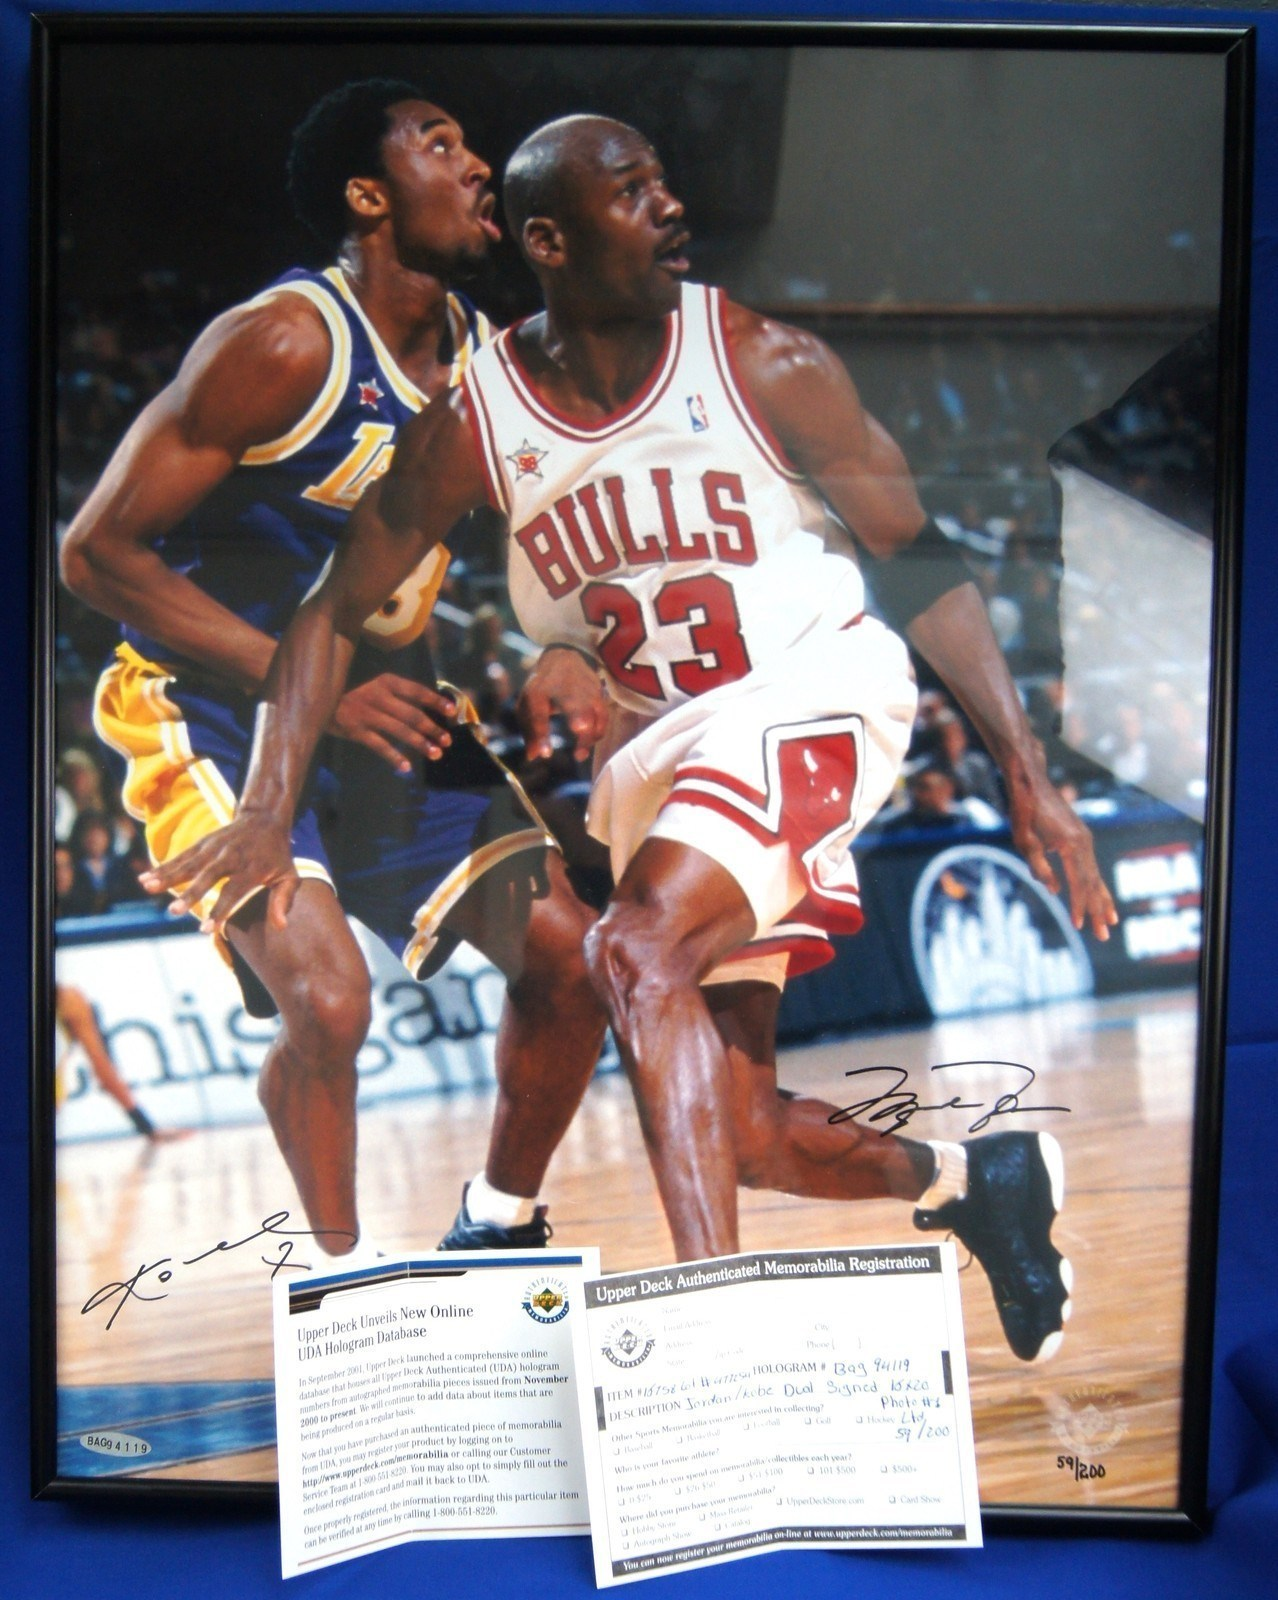 online store 319de 379c7 Signed Shoe Pricing  Active Listings for Michael Jordan Signed Sneakers